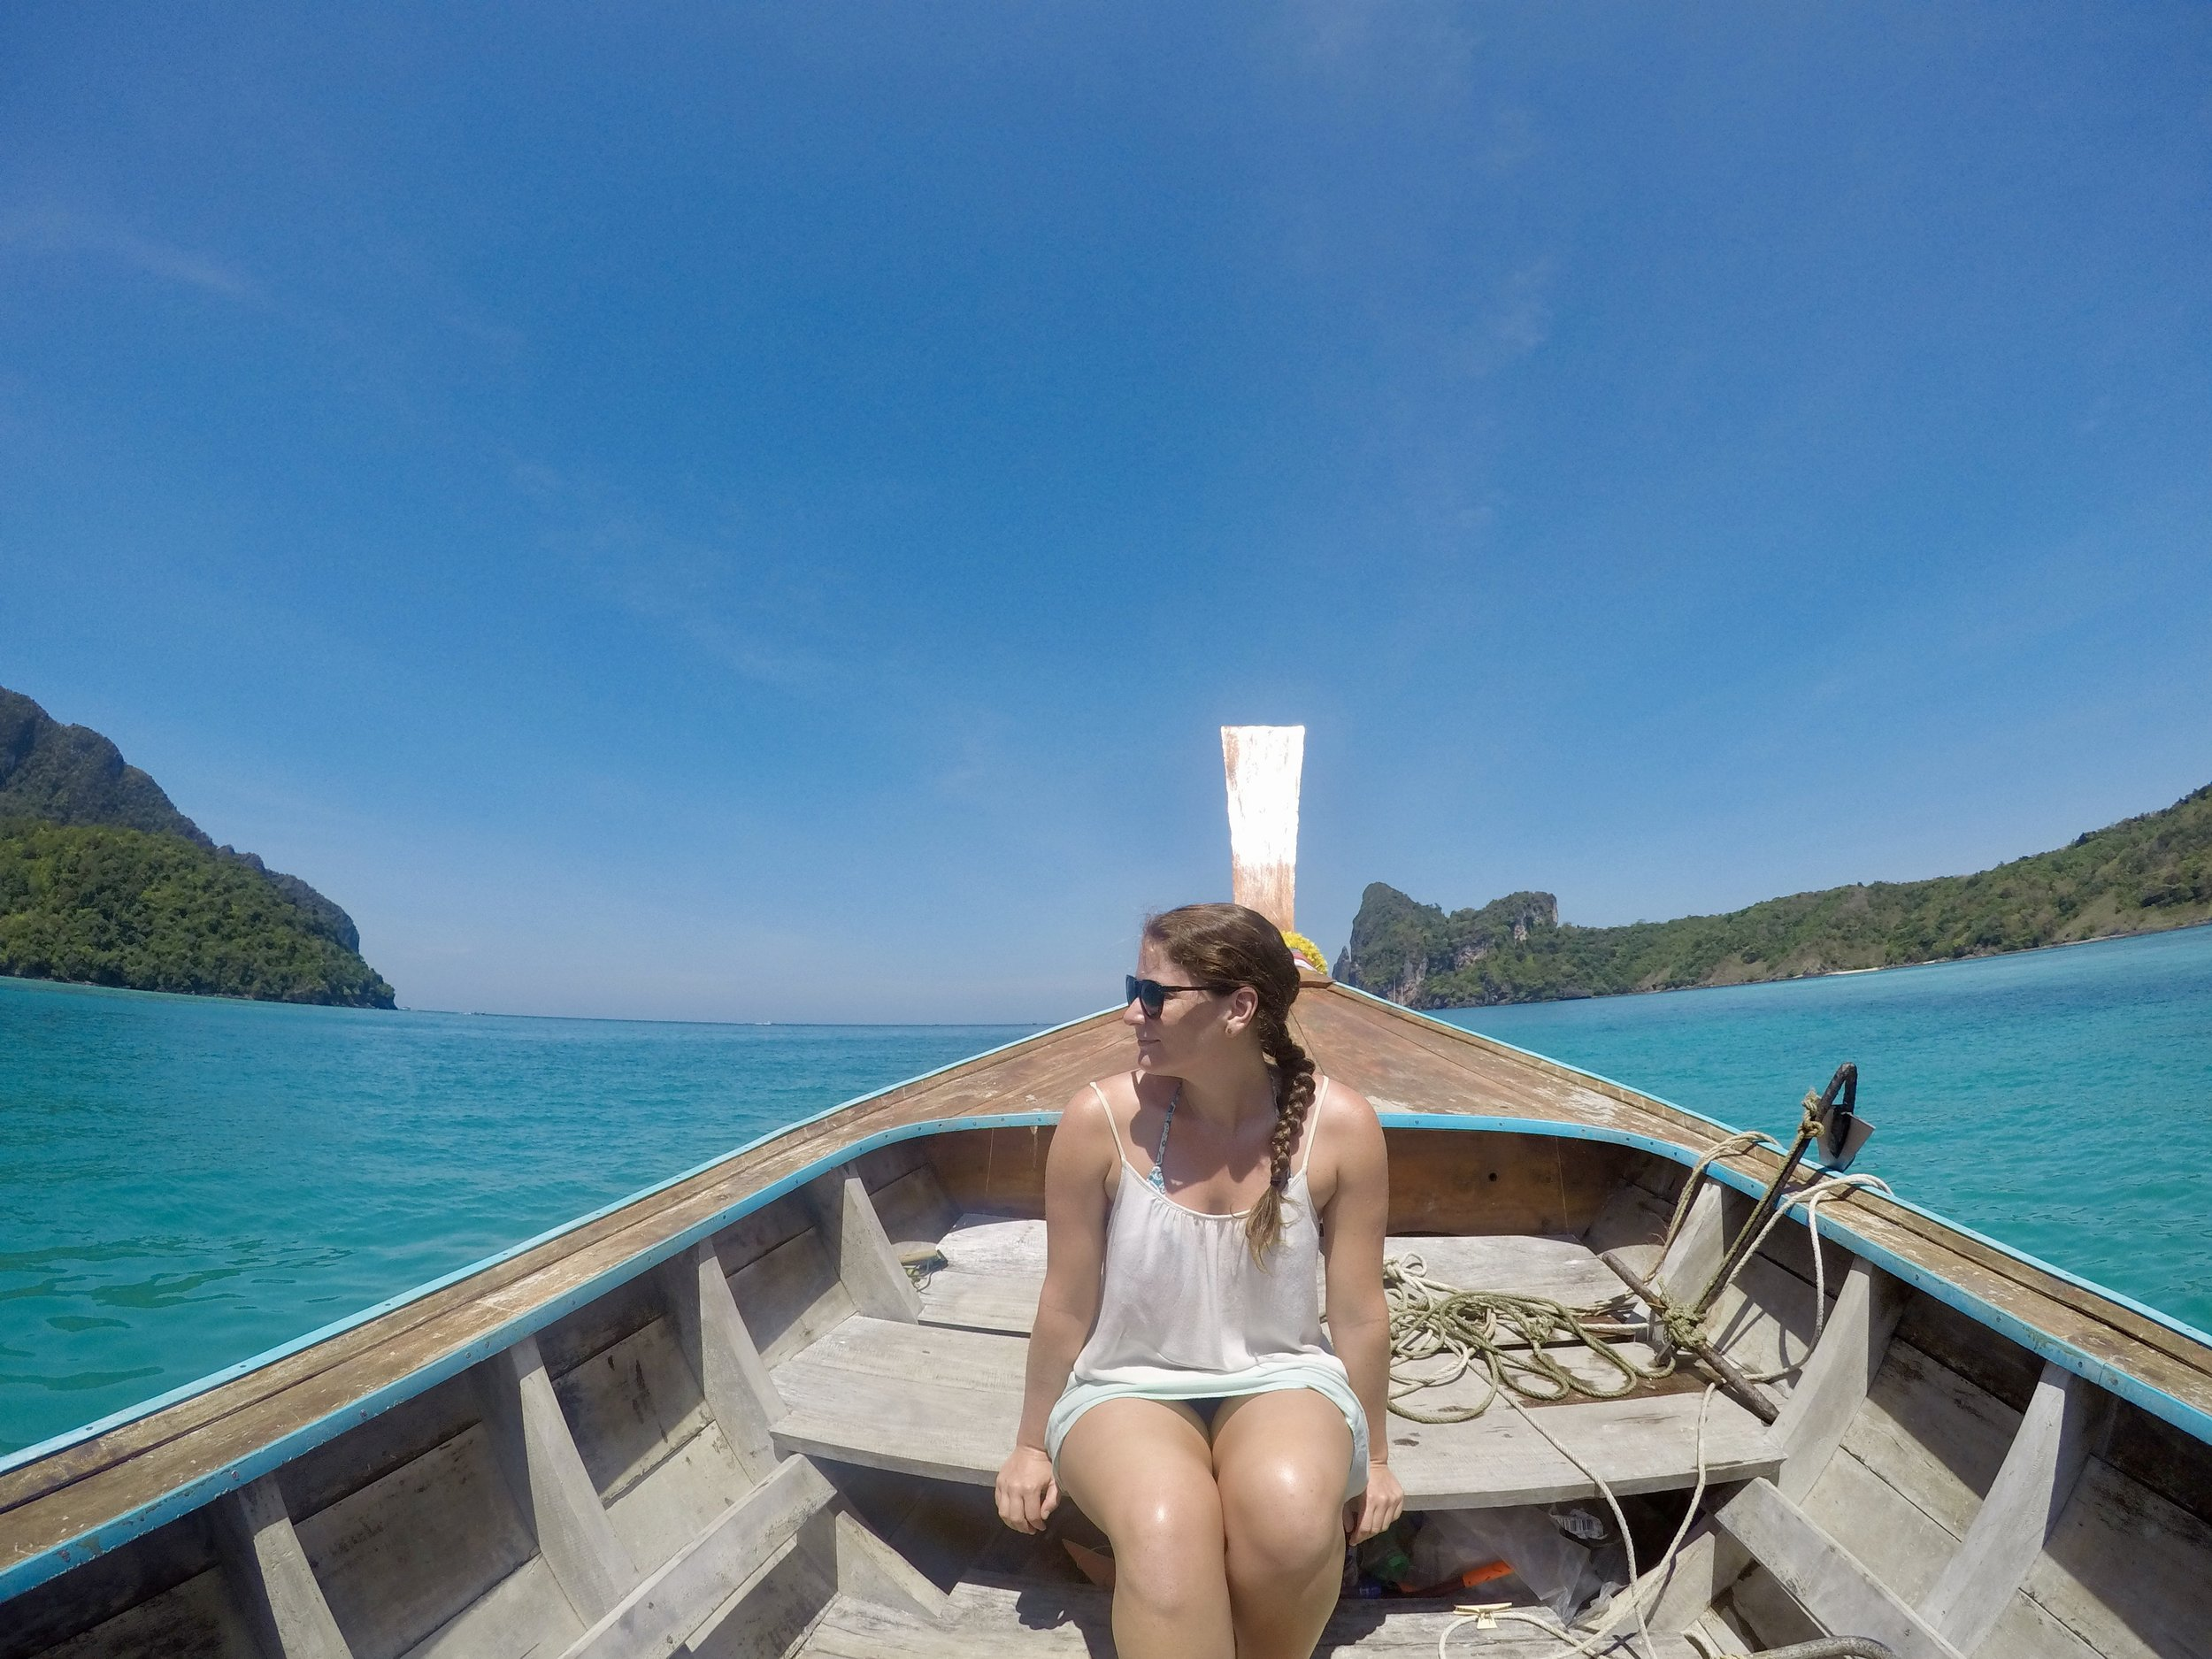 We hired a longboat for a couple hours to enjoy the island.